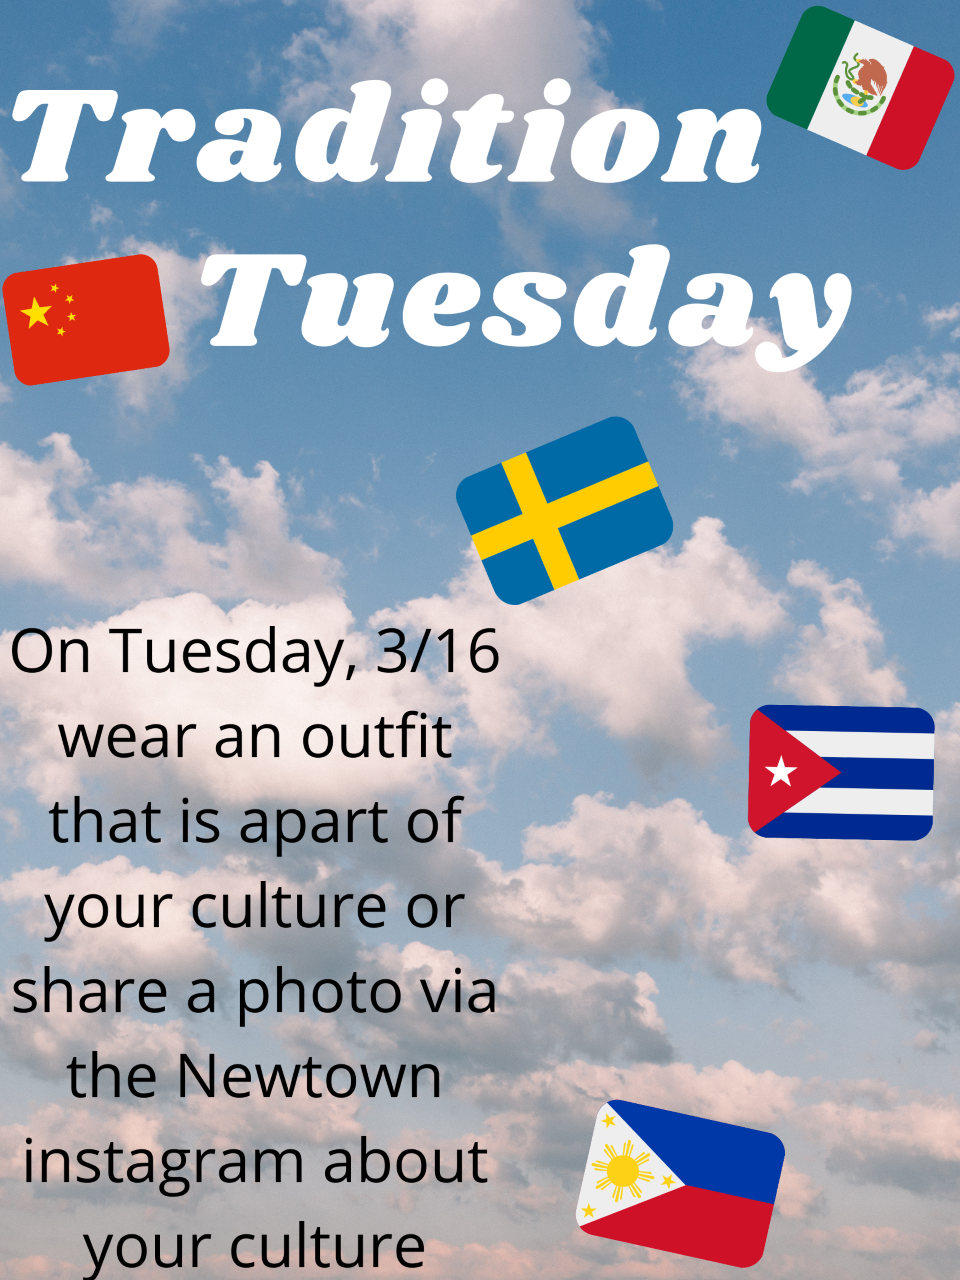 Tue 3/16: Wear an outfit that is a part of your culture or share a photo via the Newtown Instagram about your culture.